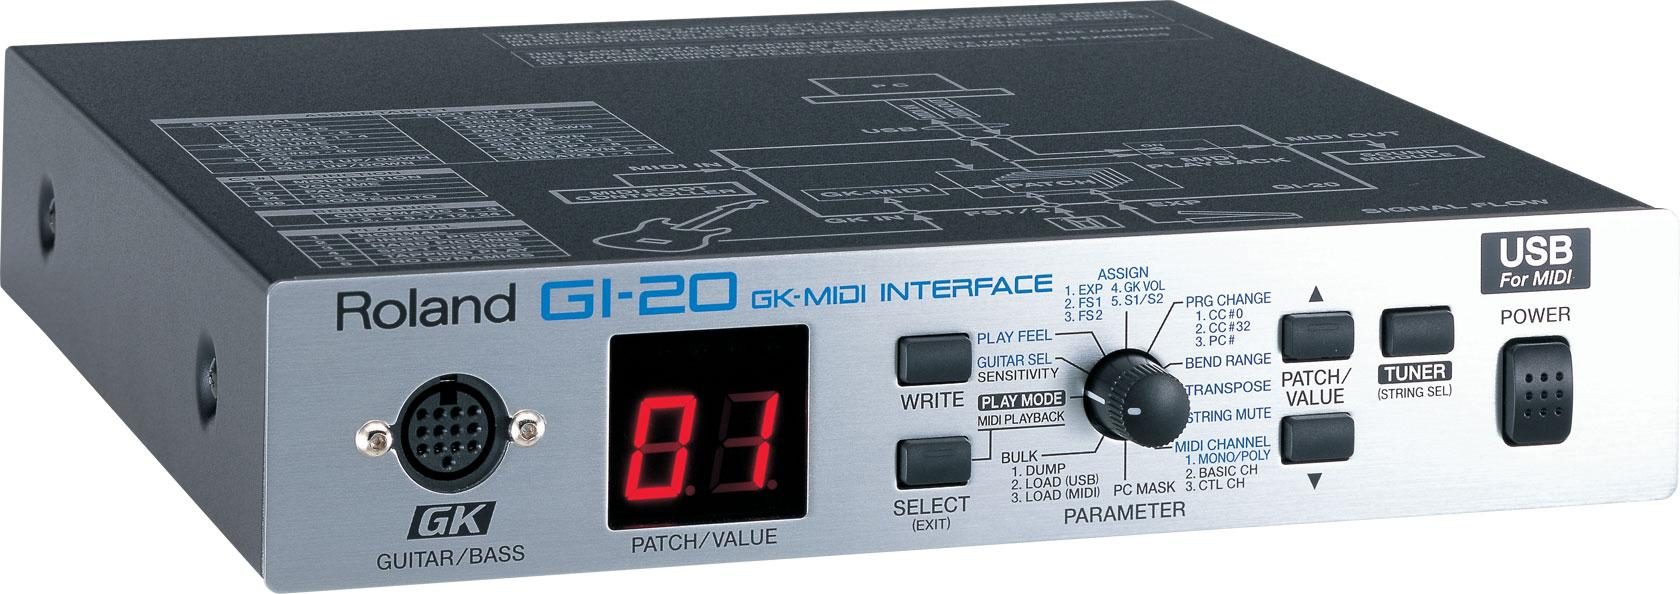 Roland GI-20 GK-MIDI Interface